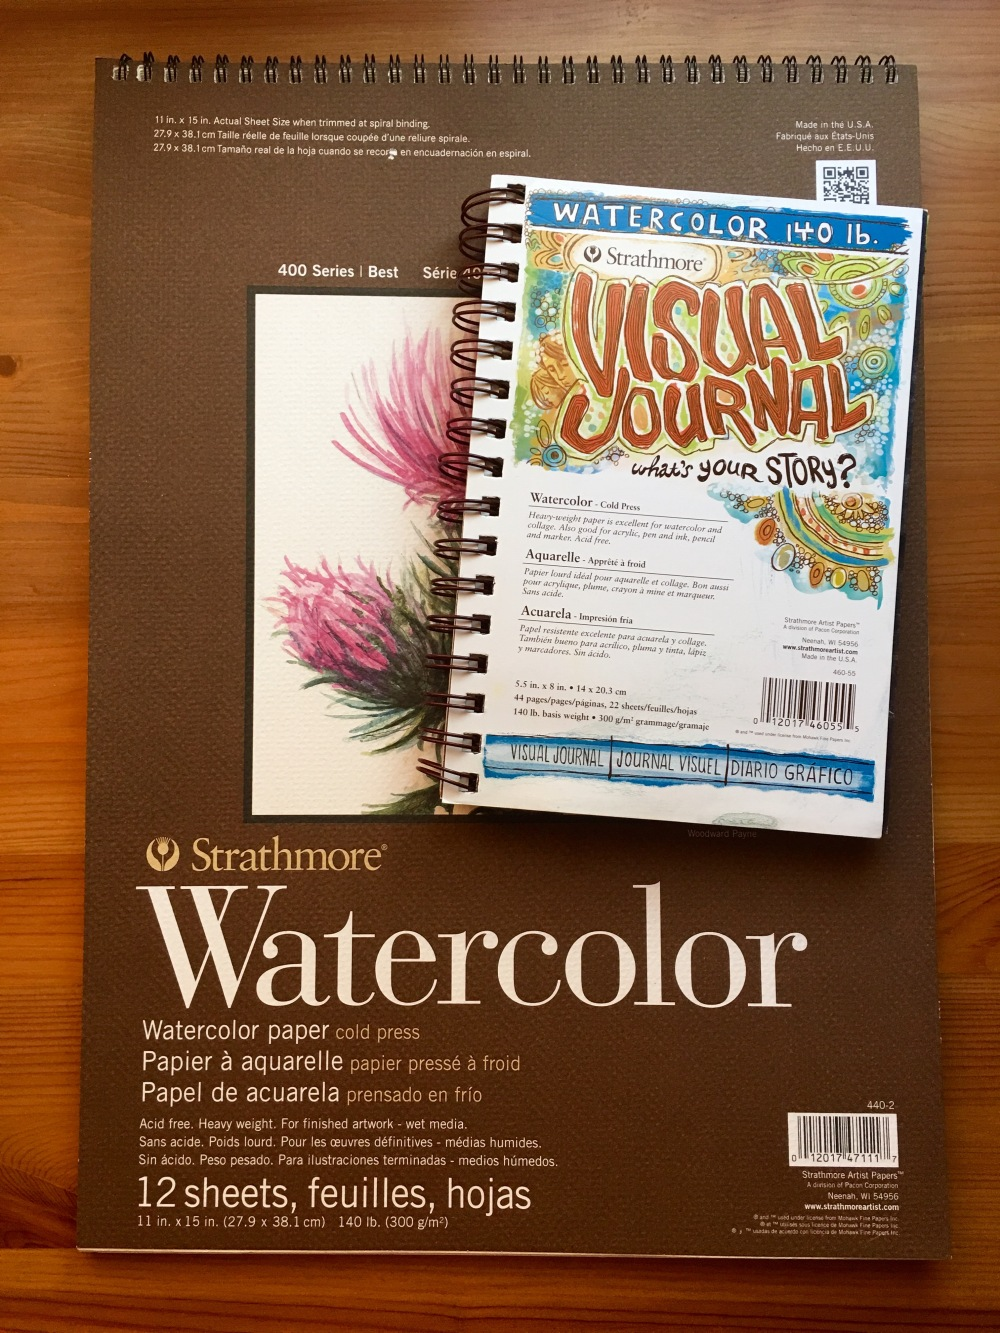 Strathmore Series 400 watercolor paper and visual journal